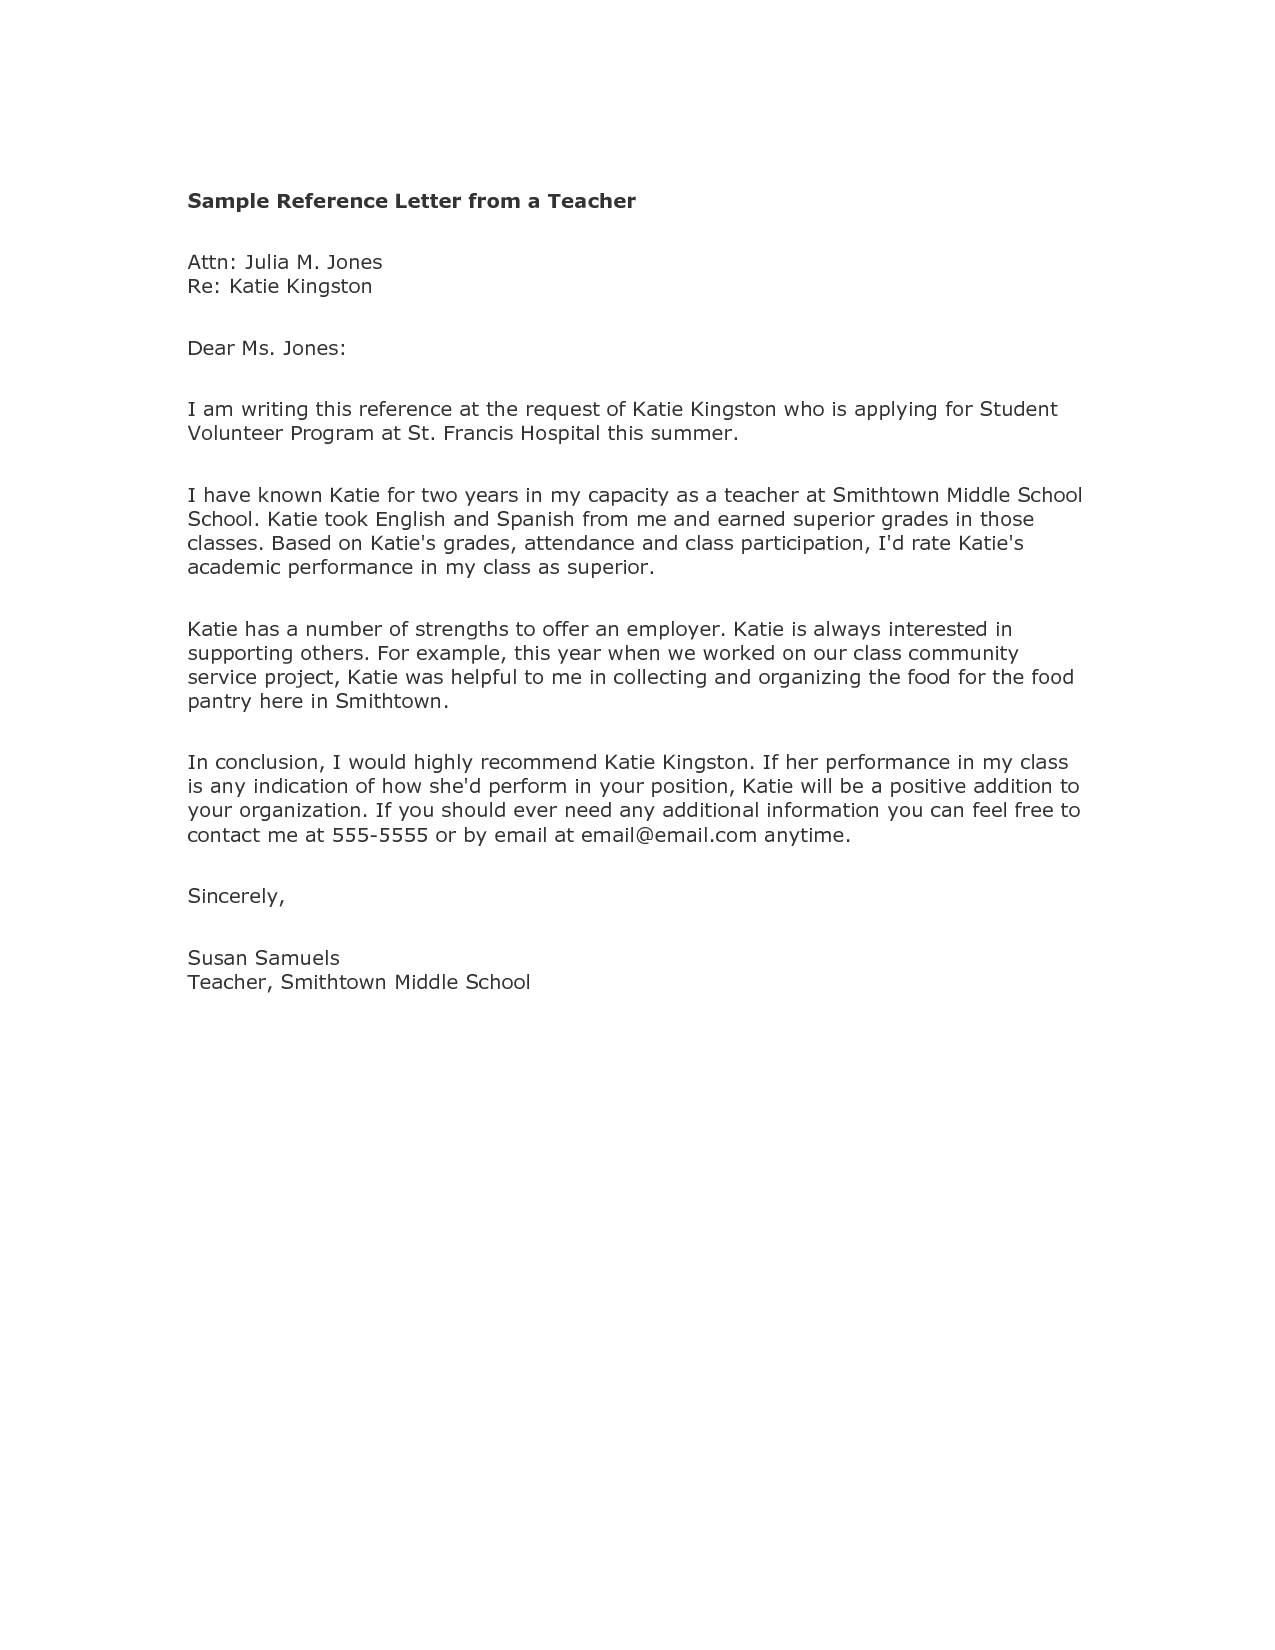 Example Recommendation Letter Unique Recommendation Letter Sample For Teacher From Parent  Httpwww .